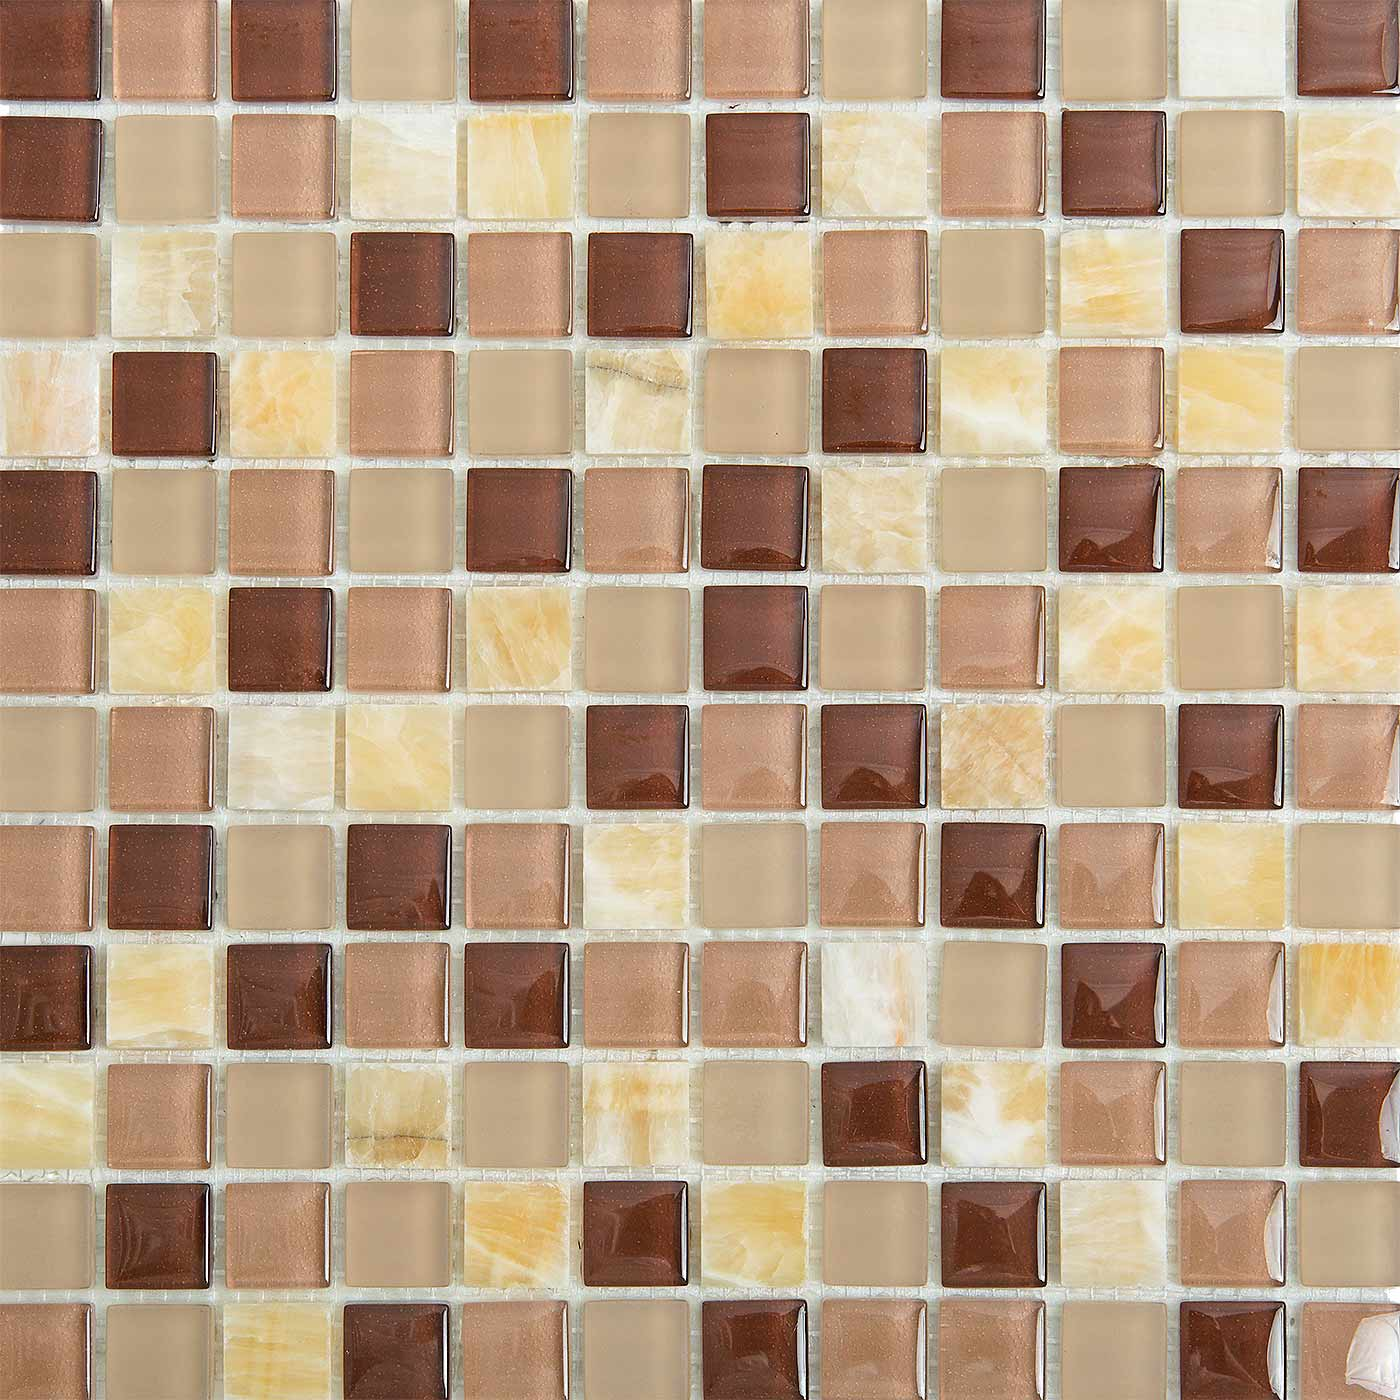 Birch 1704 Glass & Stone Blend Villi Glass Mosaic Tile, 1 sheet